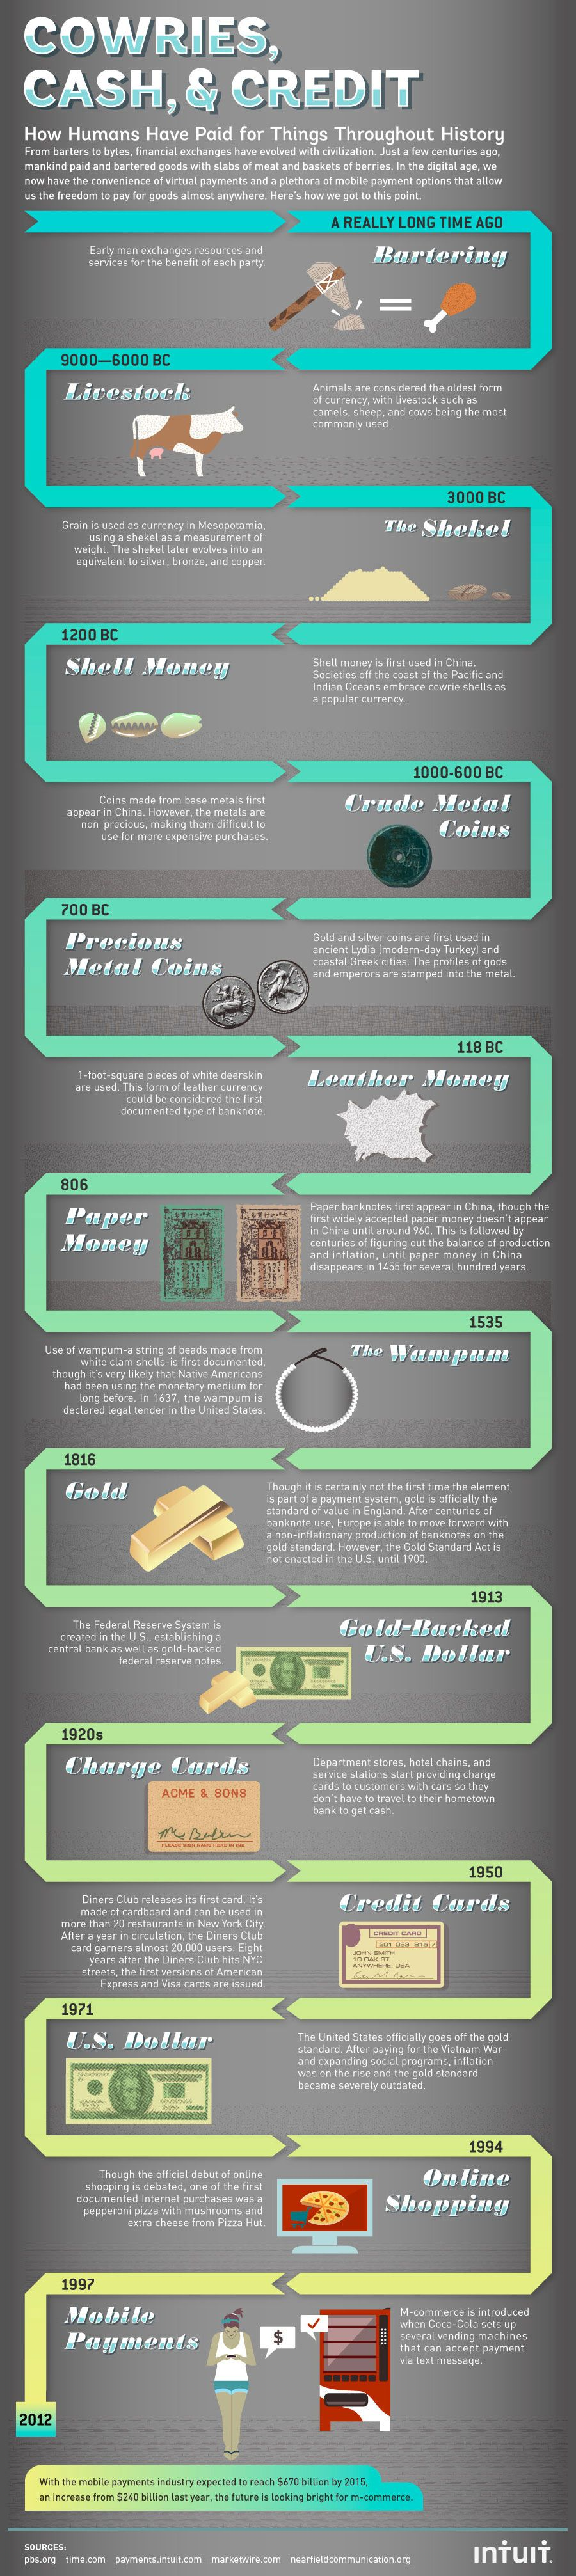 Accept Credit Card Payments Process Credit Cards For Small Businesses Evolution Money Infographic Money